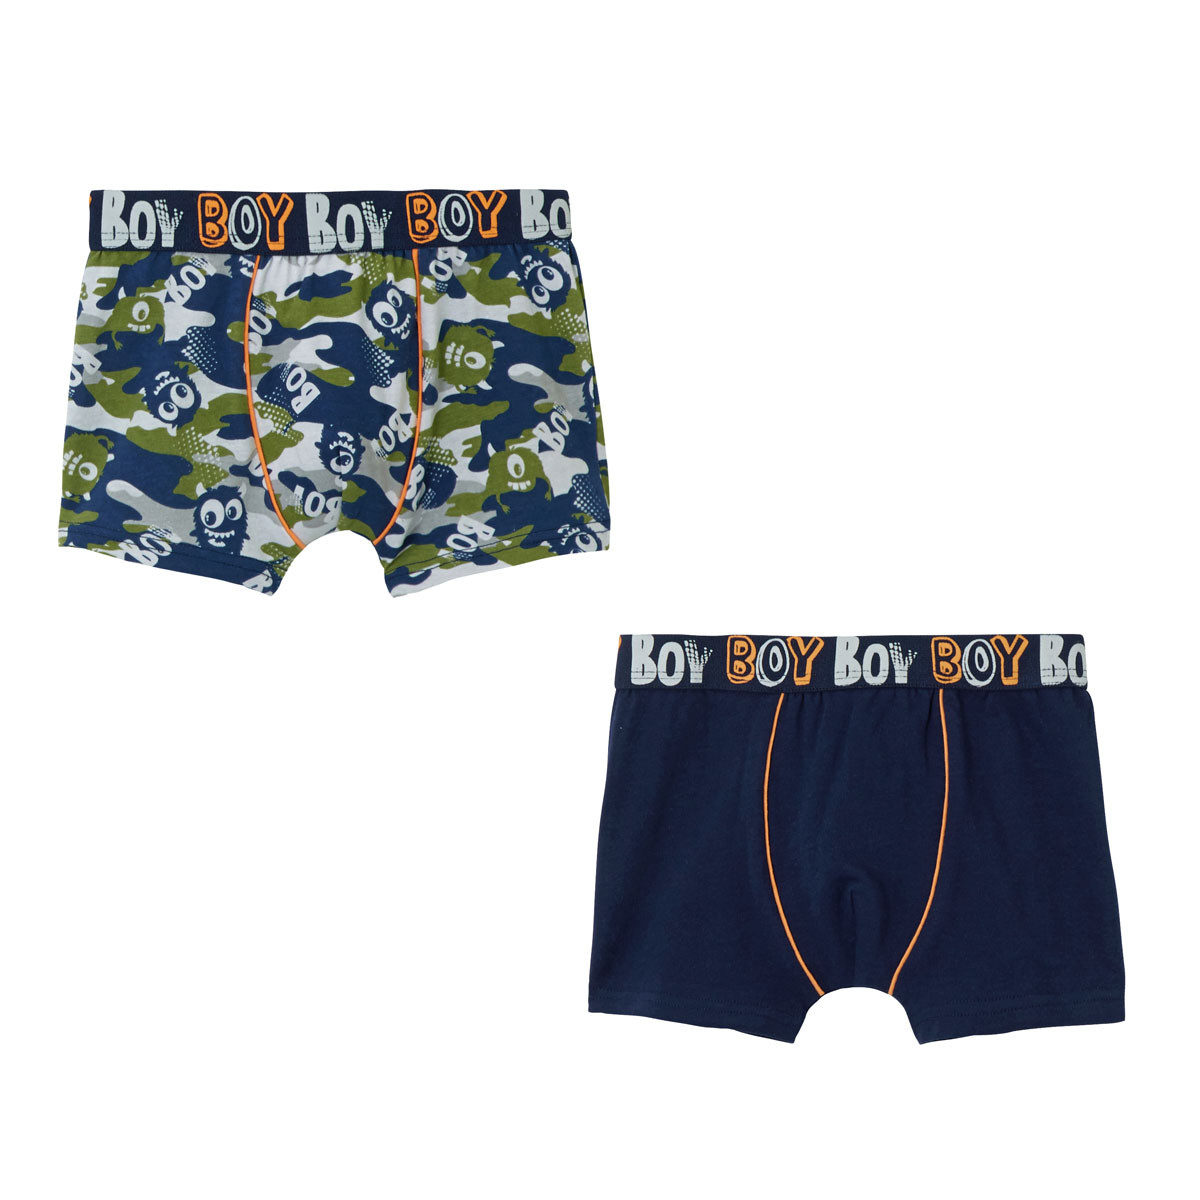 Lot de 2 boxers garçon Little Boy